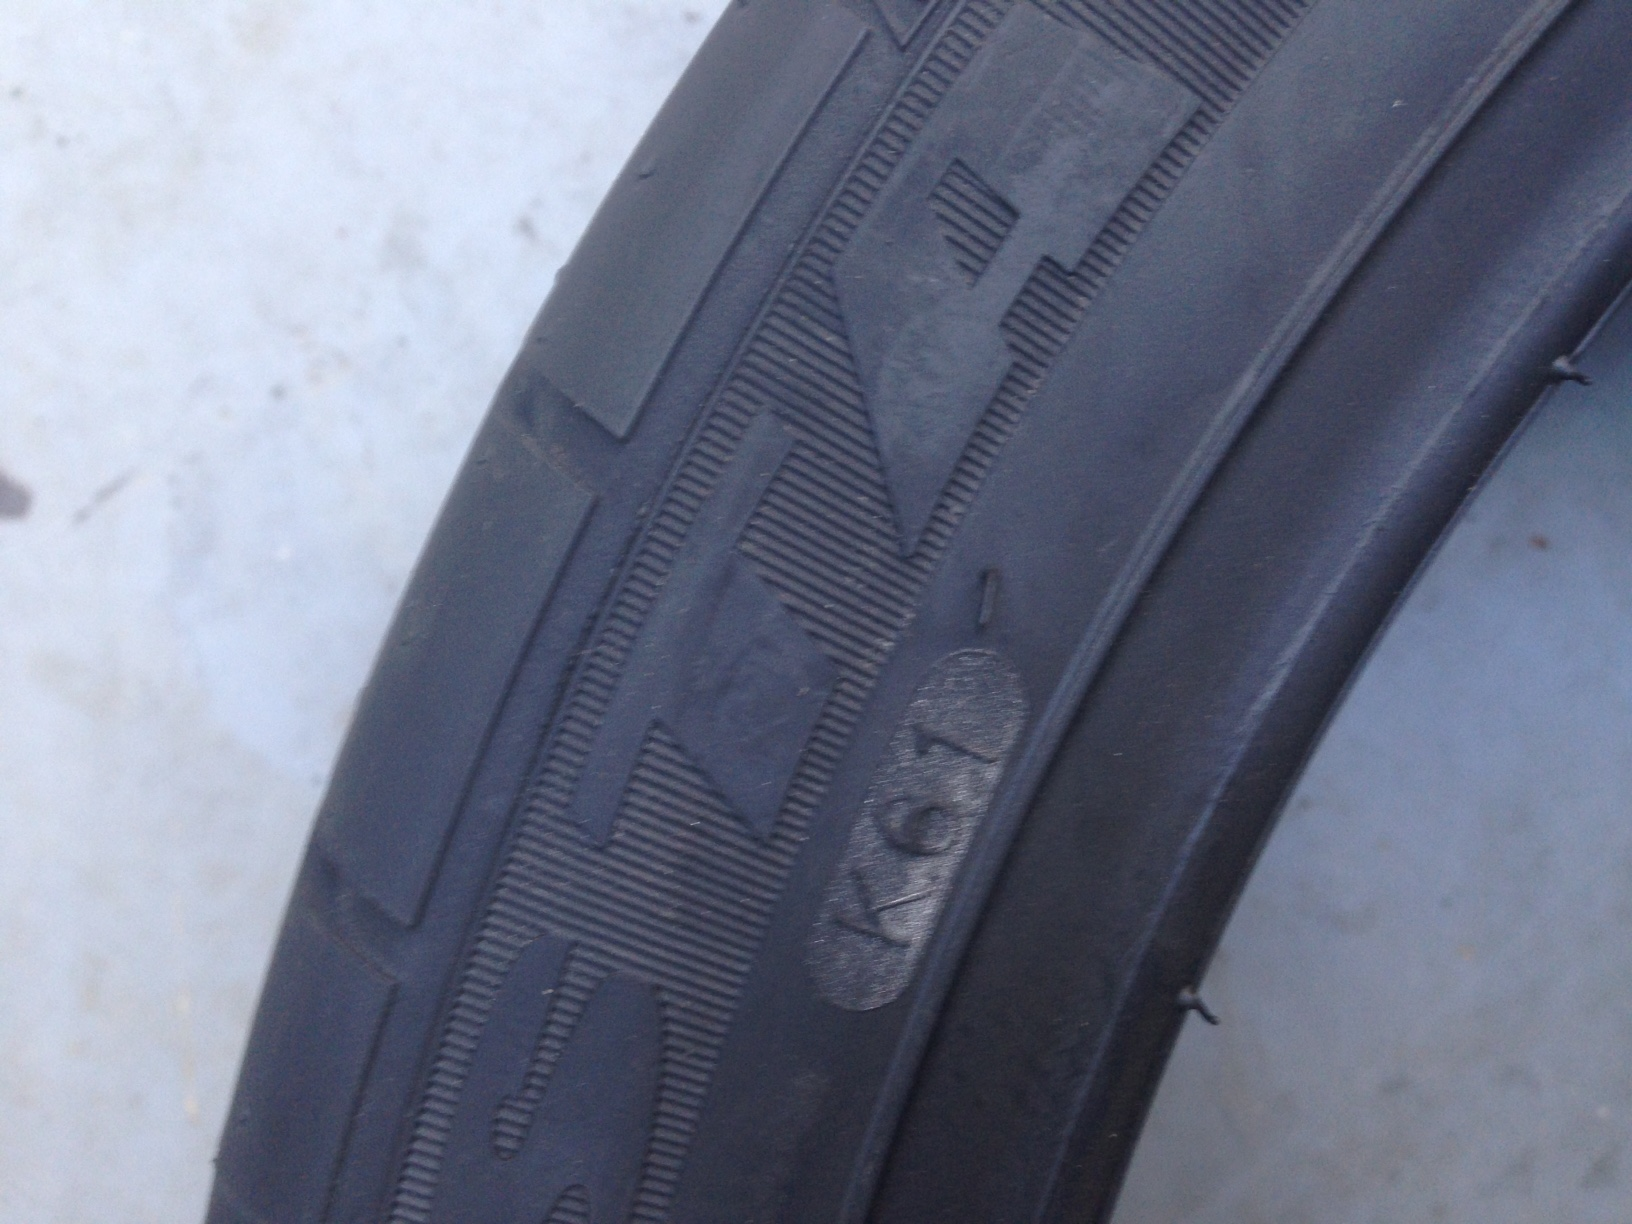 FOR SALE – Tarmac Rally Tyres (205/40/17)